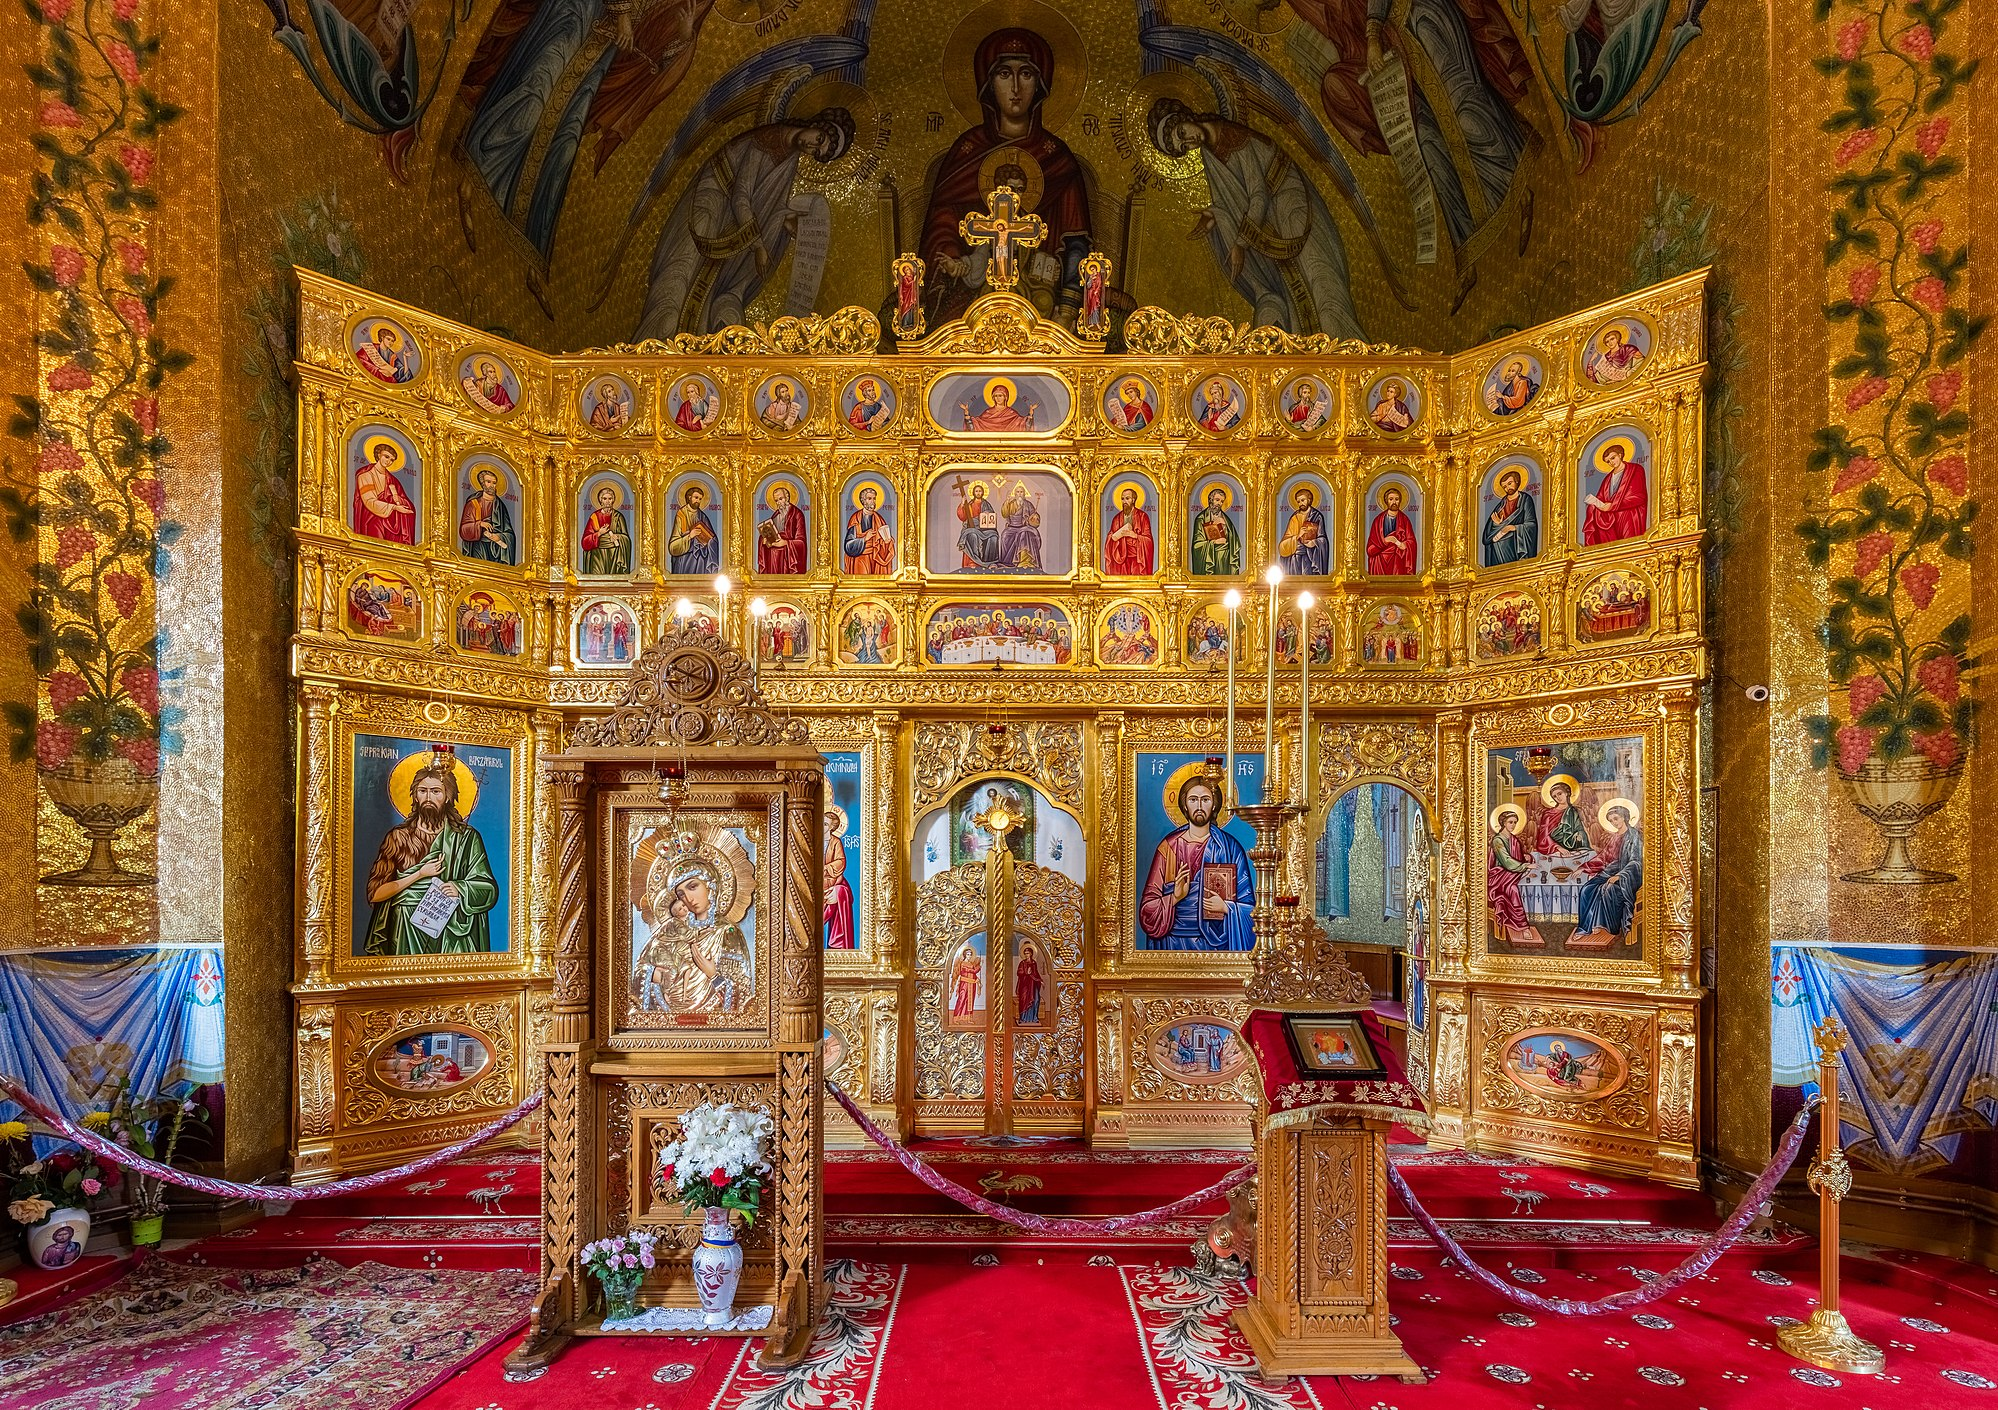 Iconostasis in the church of the Cocoș Monastery, Romania. The monastery, located in a forest clearing 6 kilometres (3.7 mi) from Niculițel, was built between 1883 and 1913 and is dedicated to the Dormition of the Theotokos.